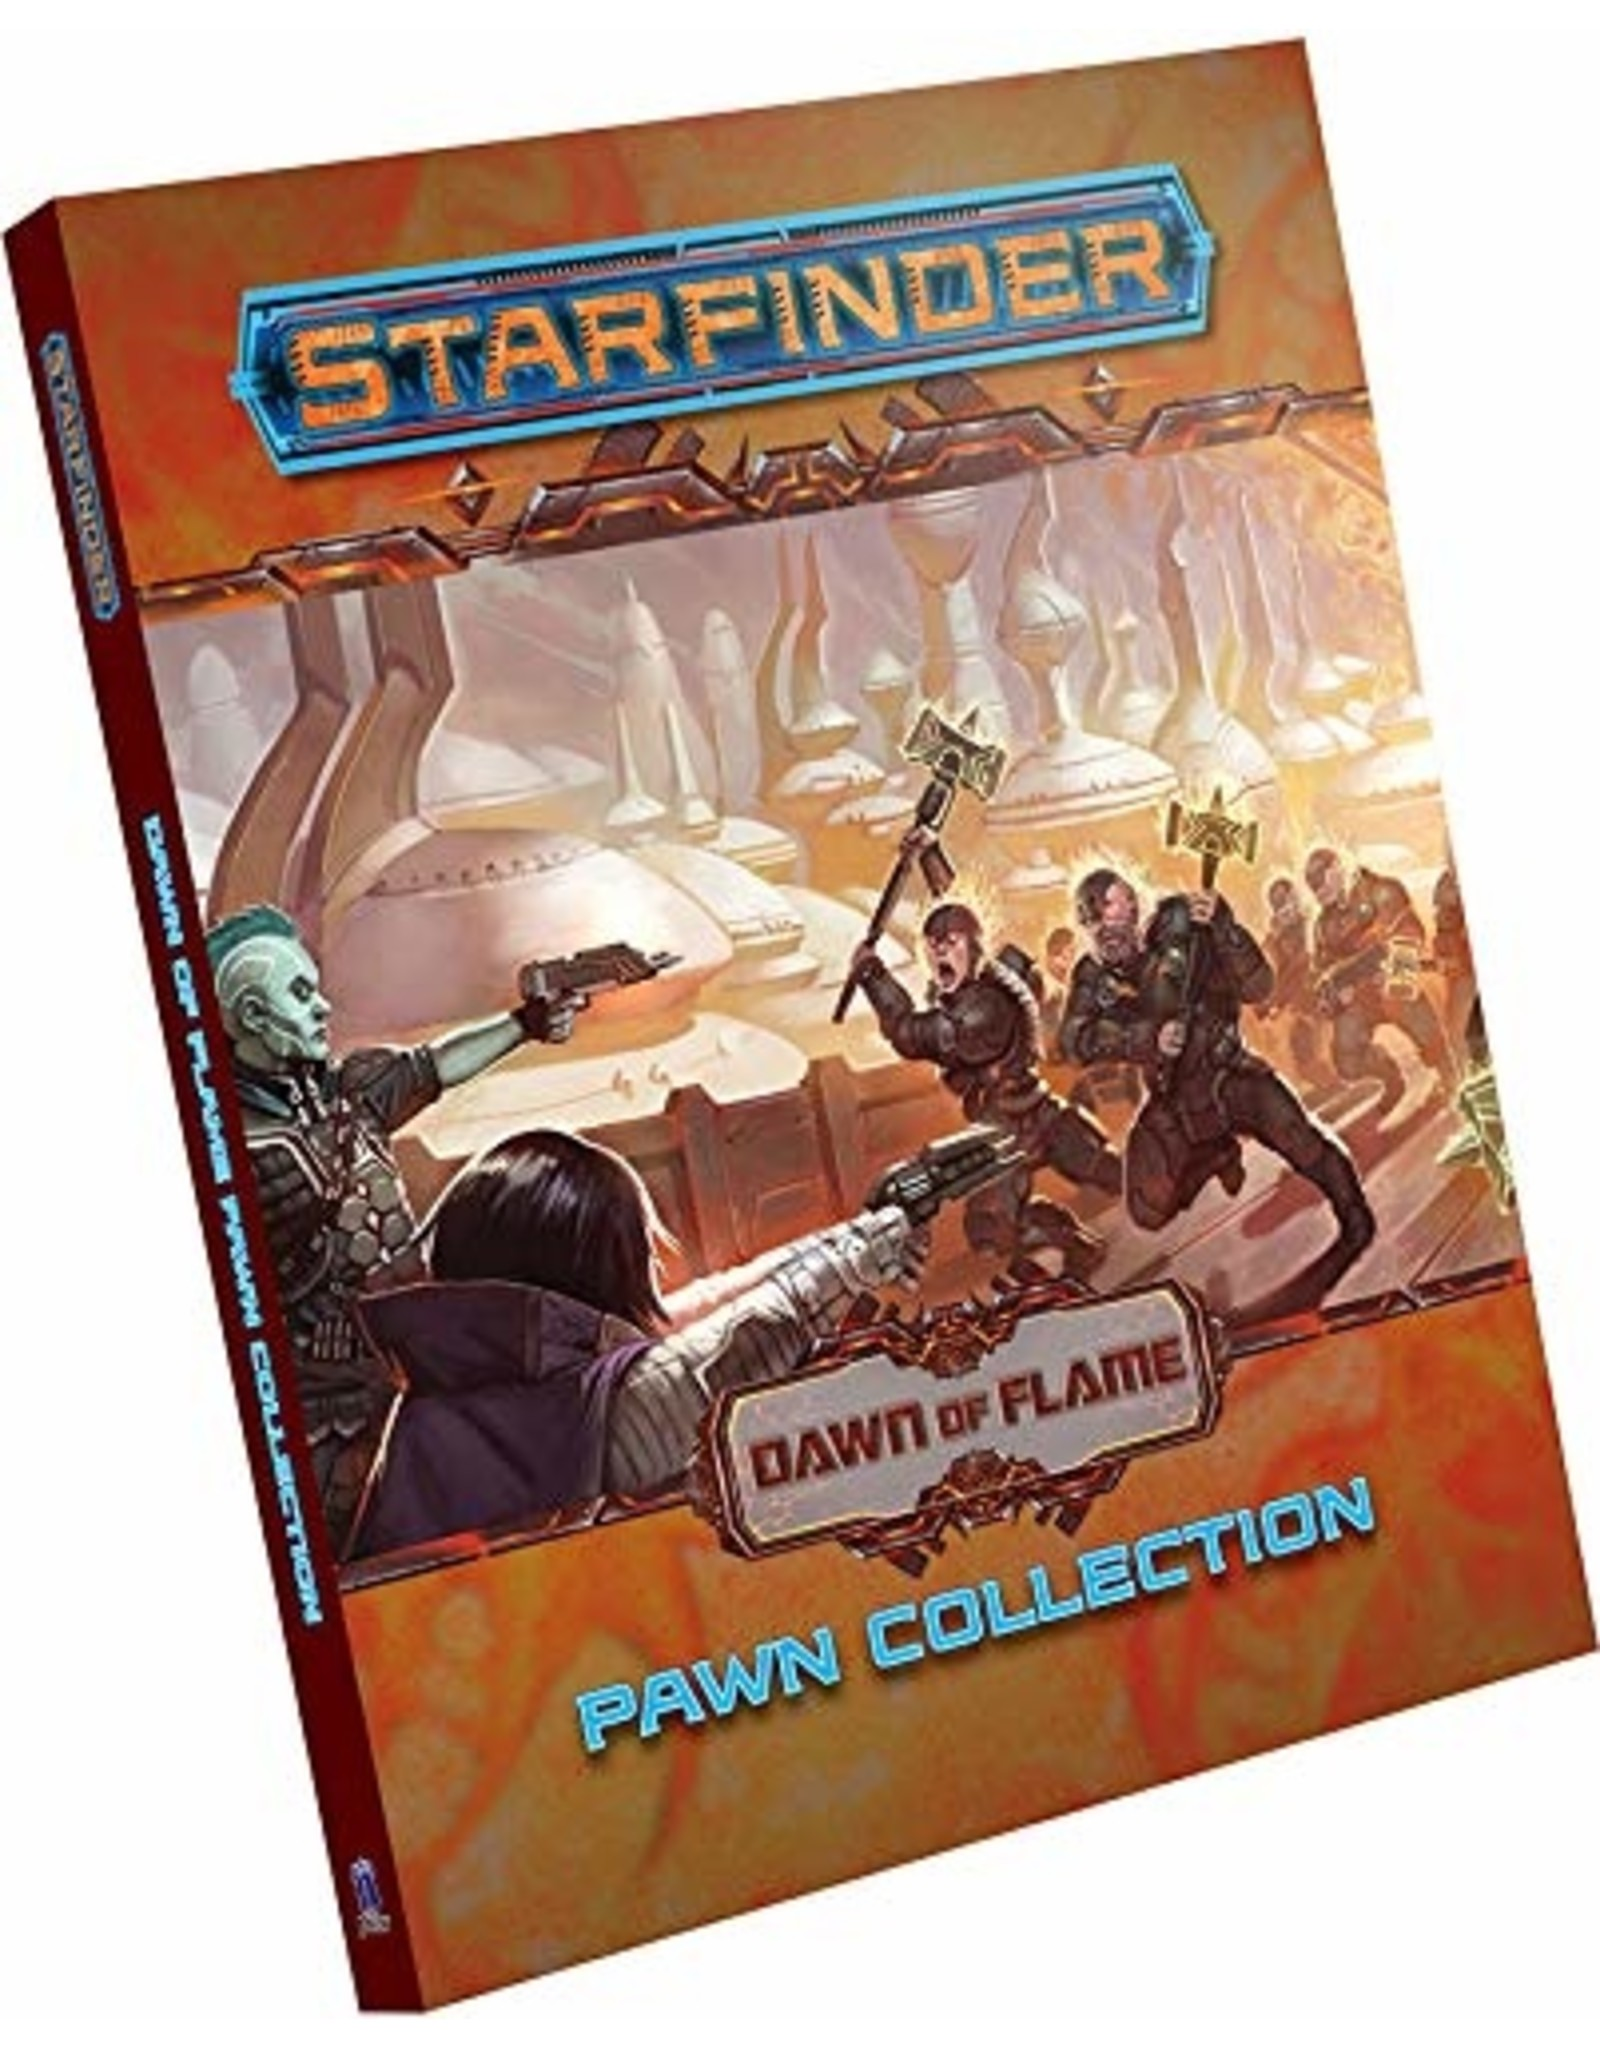 Starfinder: Pawns - Dawn of Flame